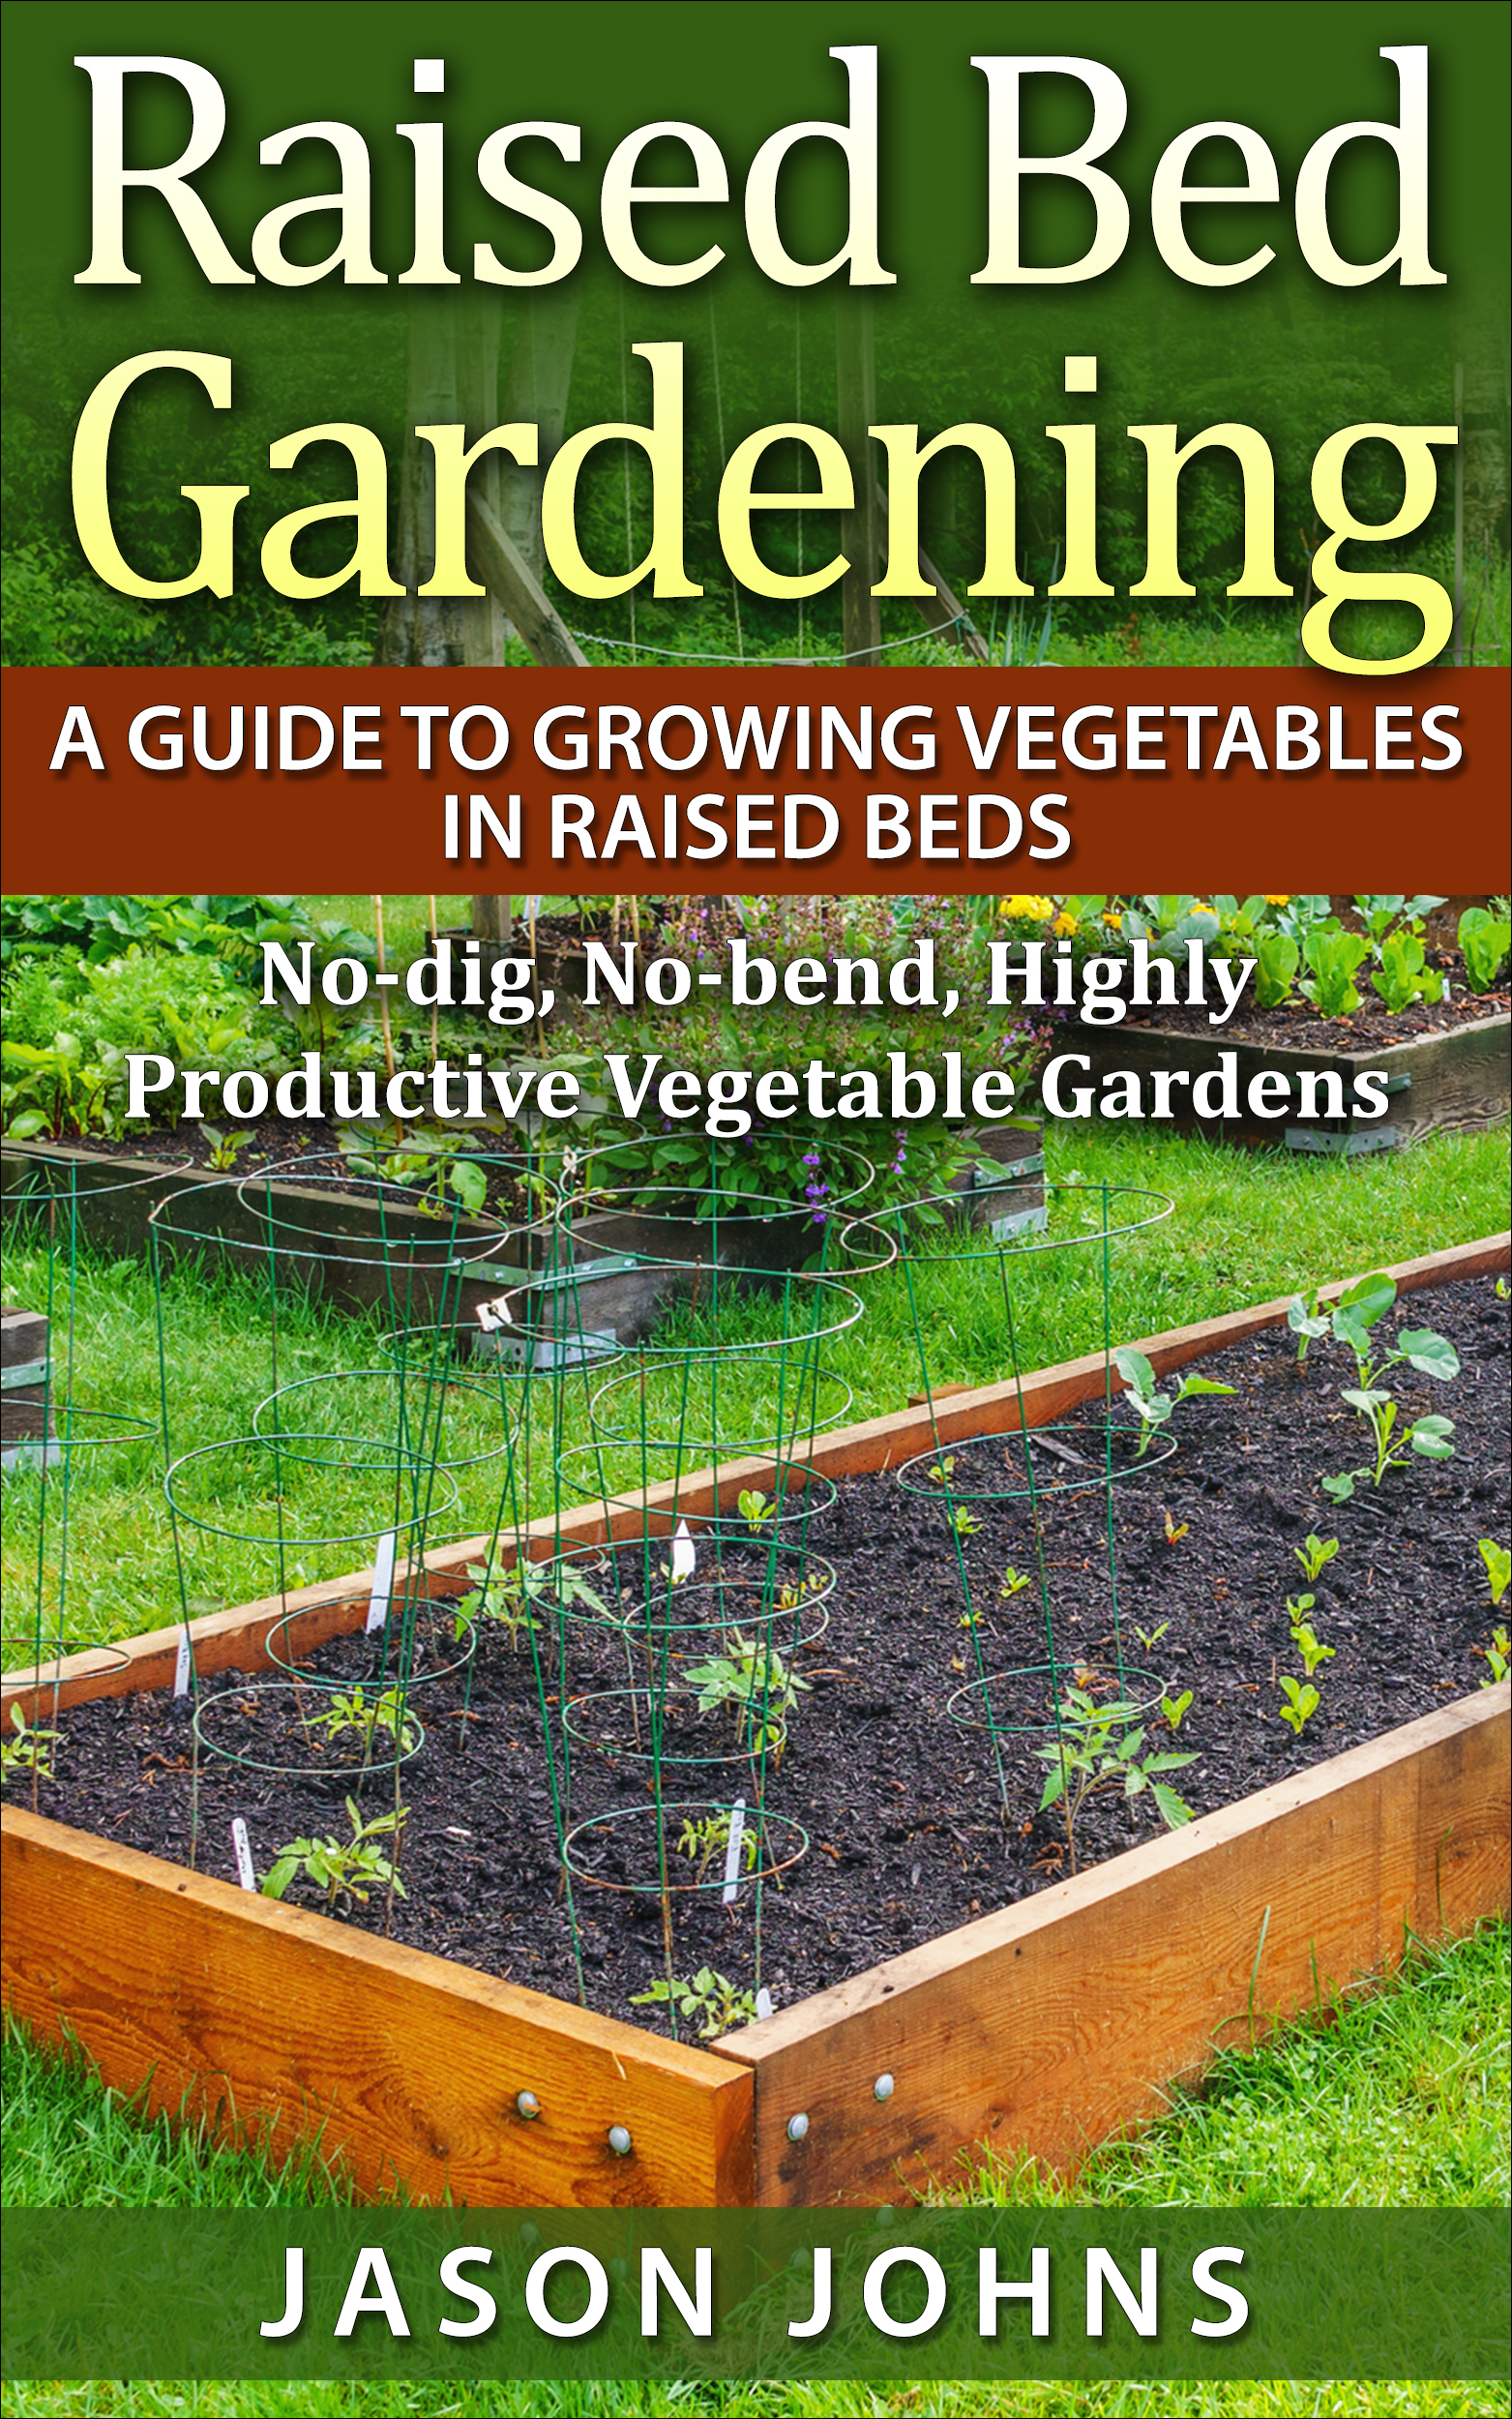 a mulch damaging grass megs garden vegetable your from has my soil crop cover gardening are shredded cce leaves ccesuffolkligardening suffolk long veg yard reduced and of you adding clippings rototilling with